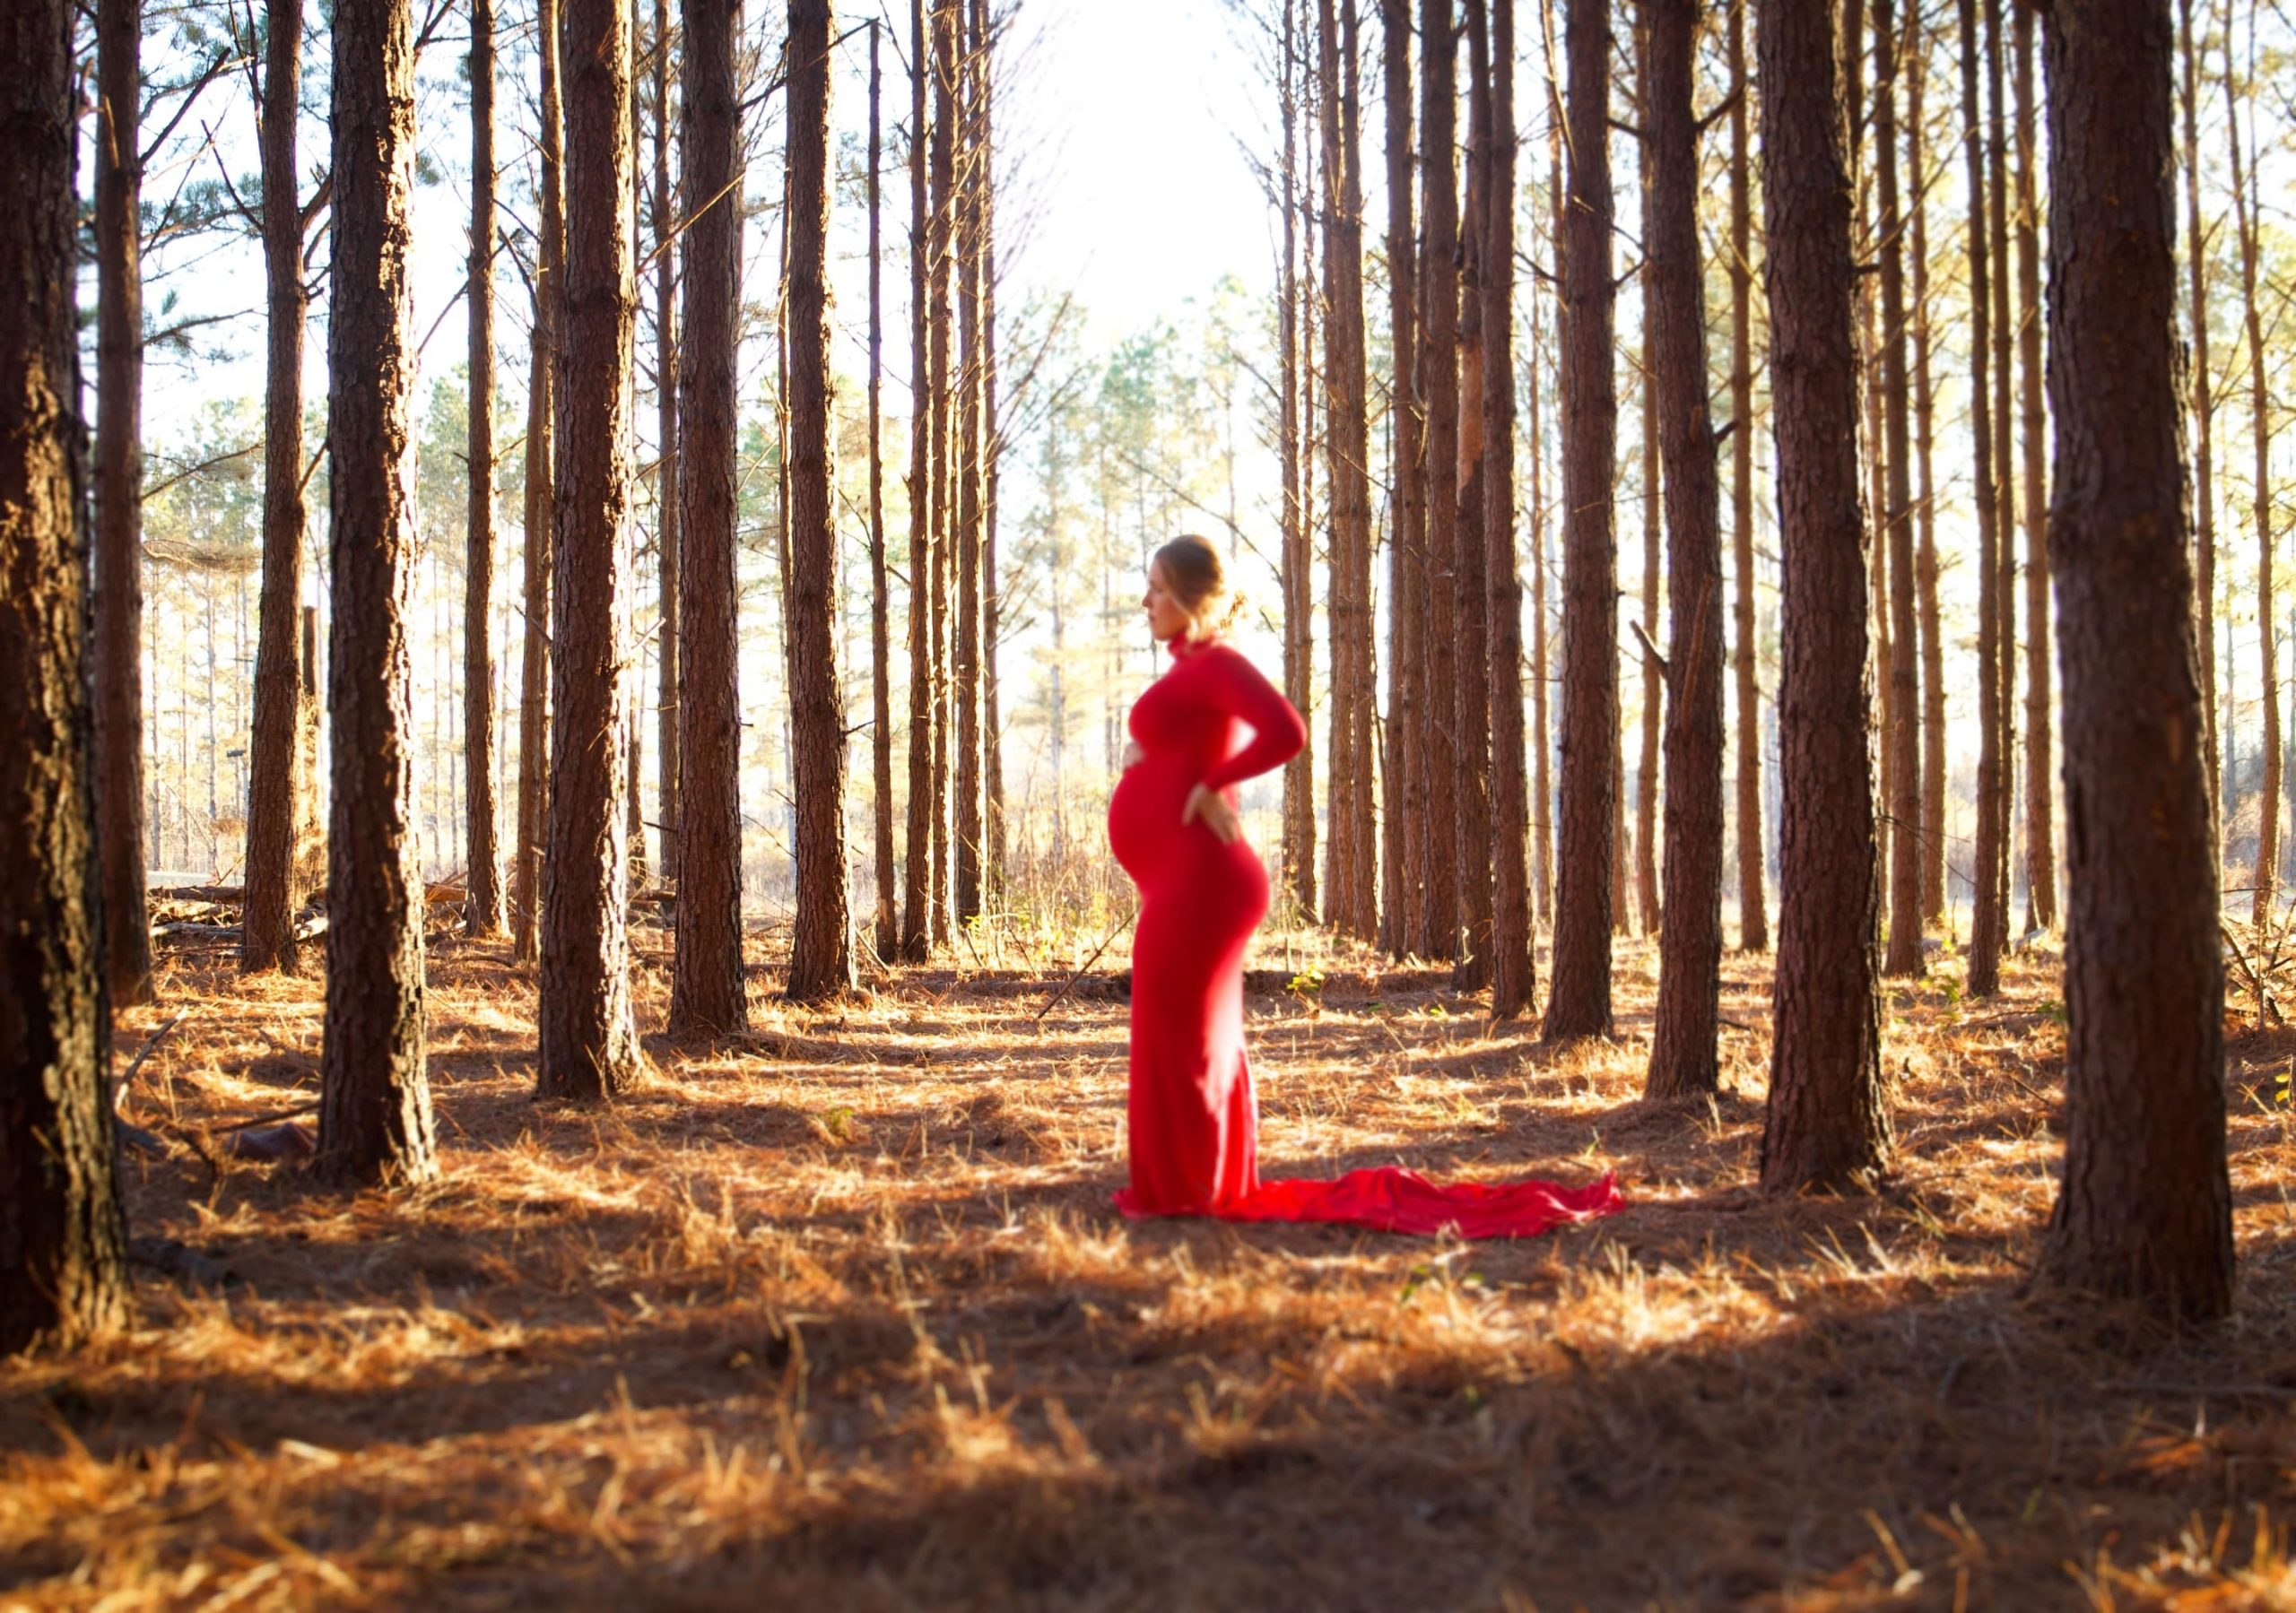 Maternity Photos and an Update at 35 Weeks